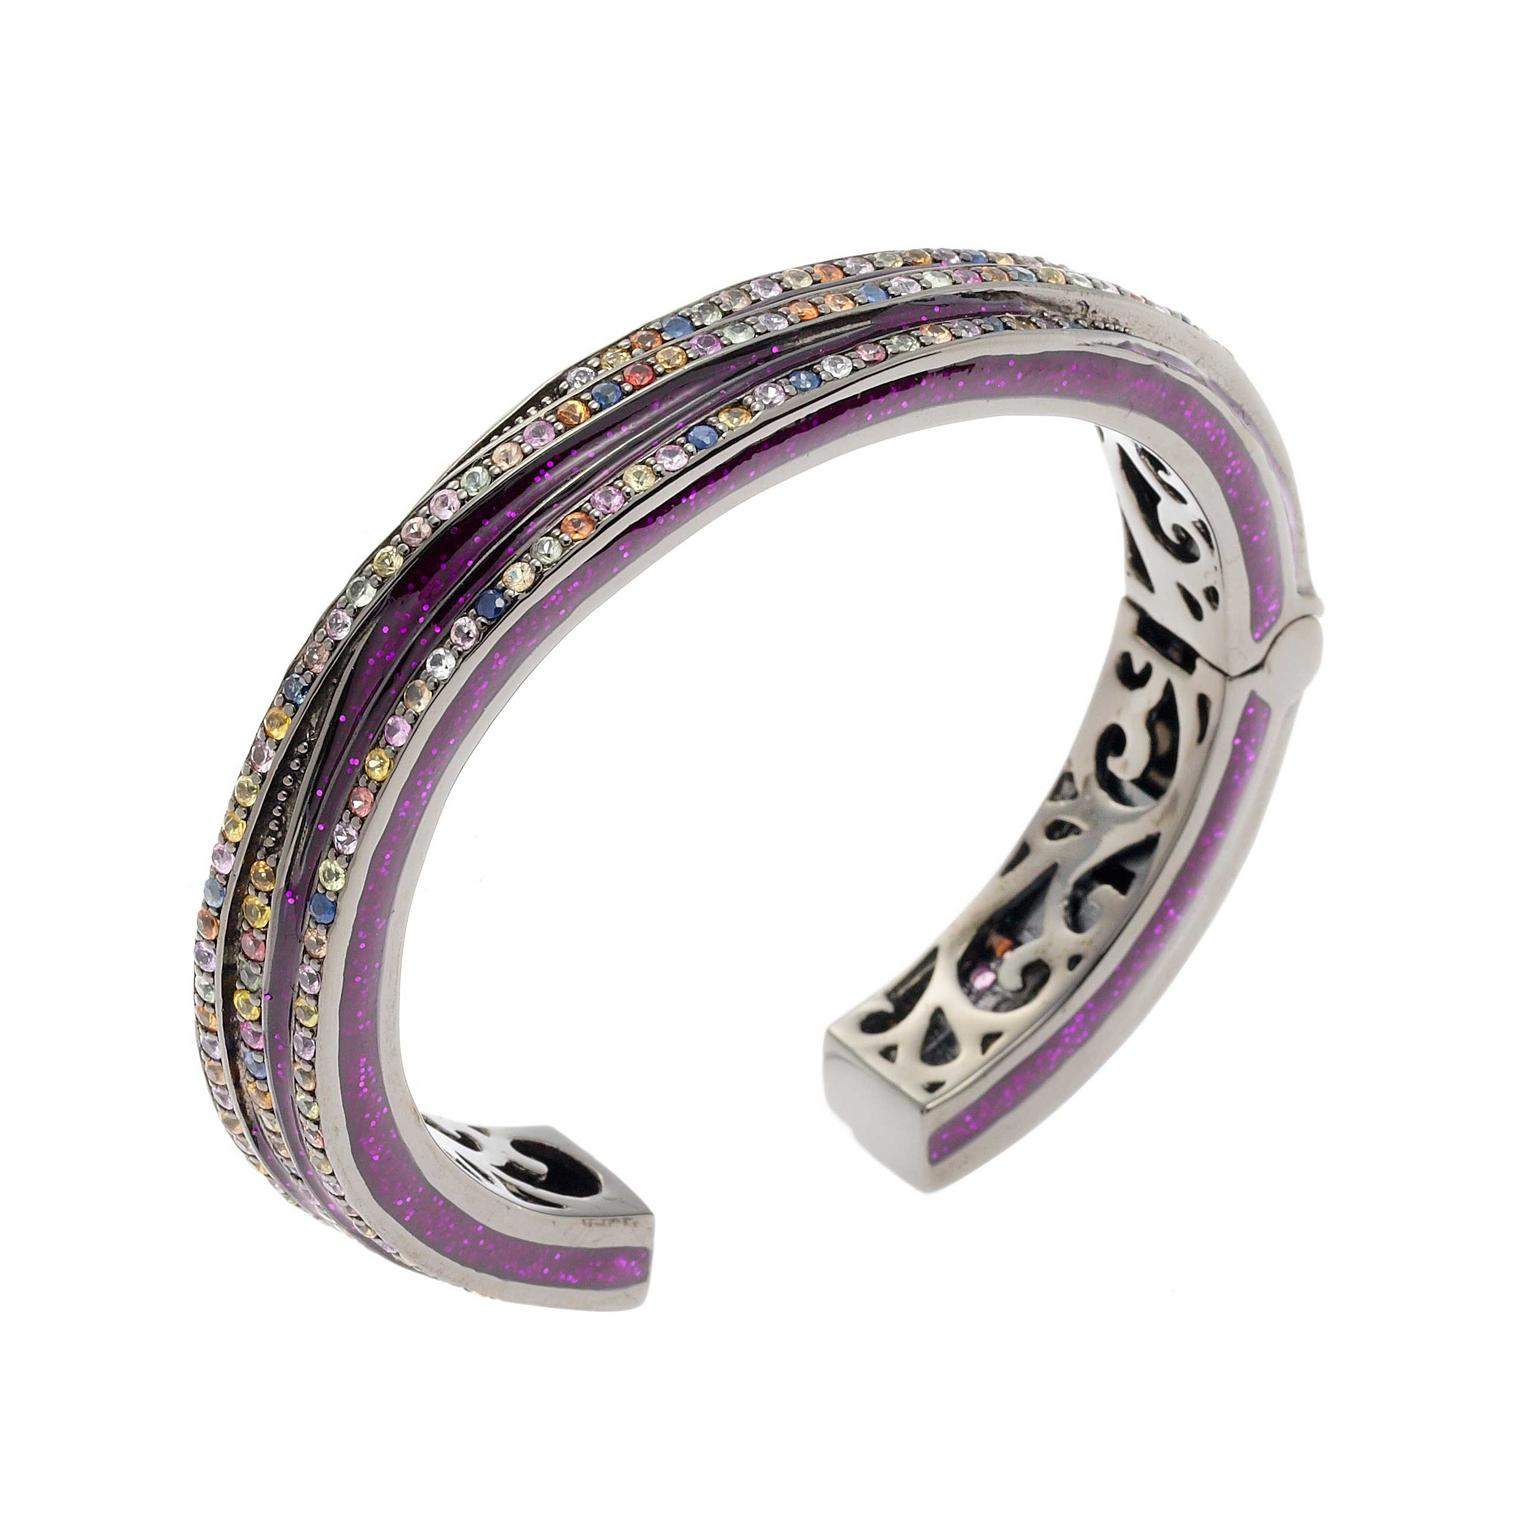 Matthew Campbell Laurenza silver purple glitter bangle set with sapphires in black rhodium